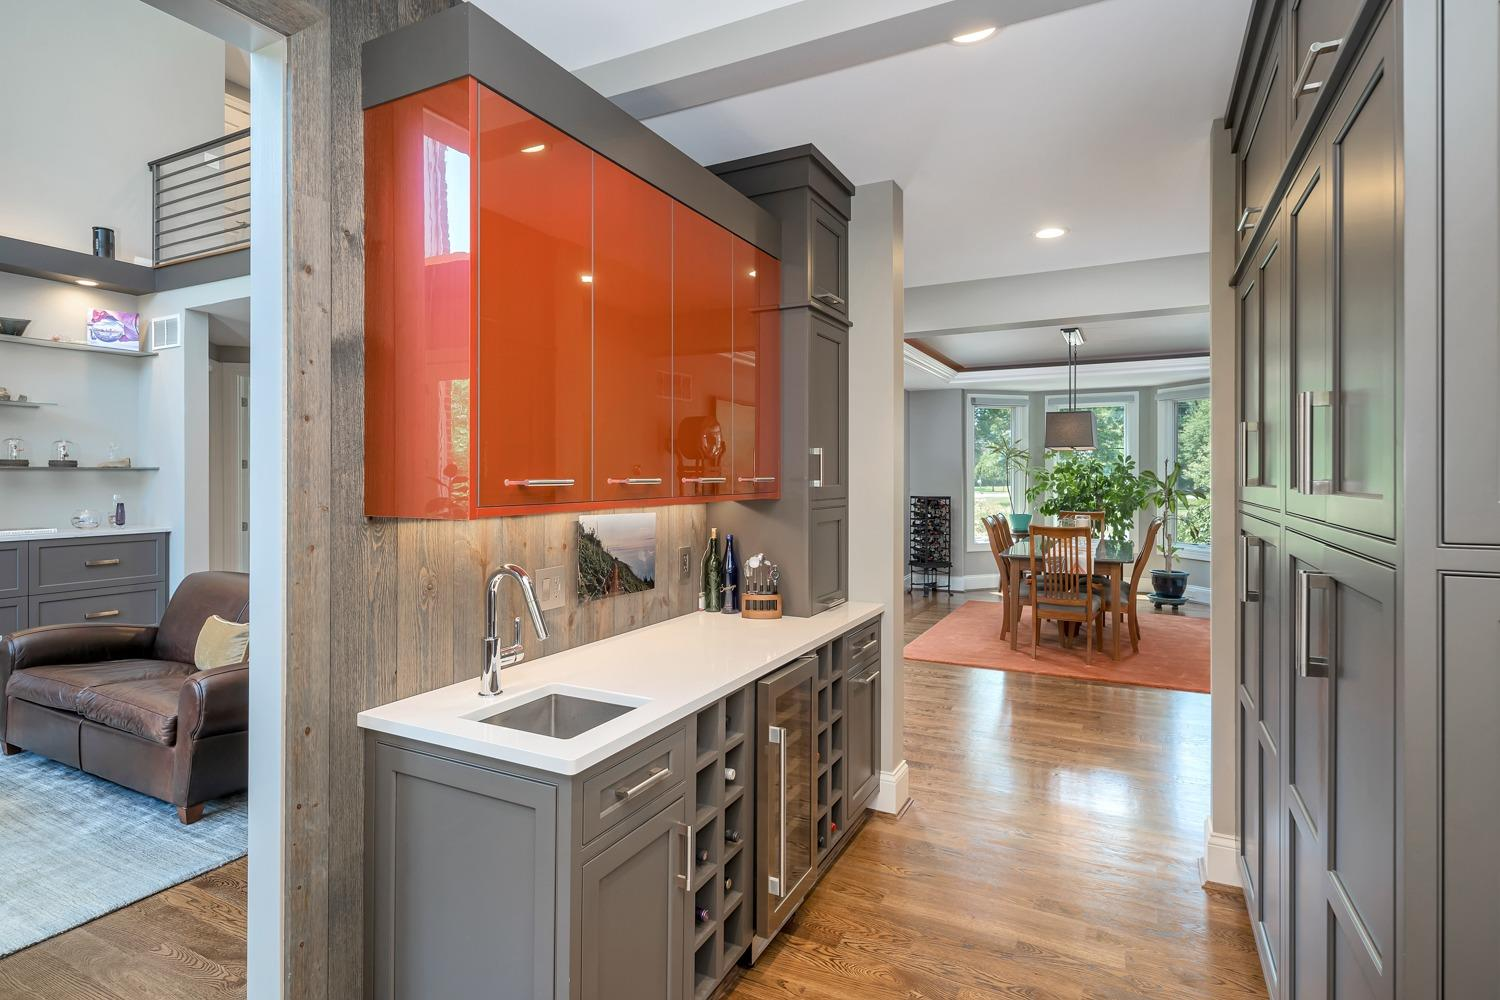 Butler's pantry features a wet bar w/wine refrigerator and abundant storage.